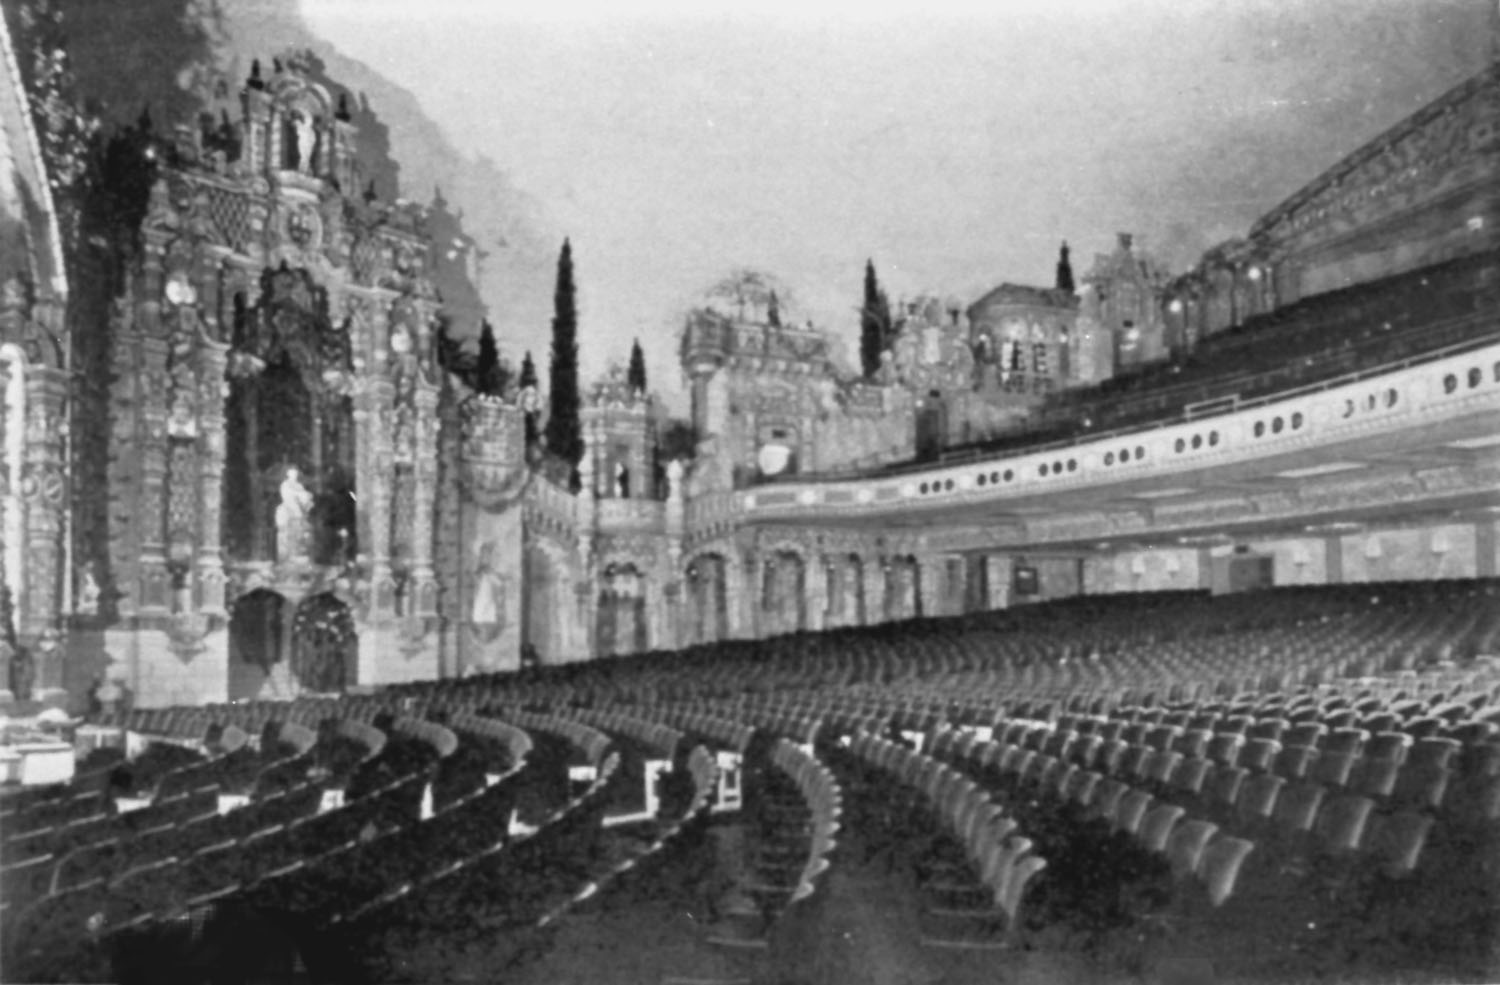 Loew's Valencia Theatre - Jamaica (Queens), N.Y. (photo: AJWB Collection)